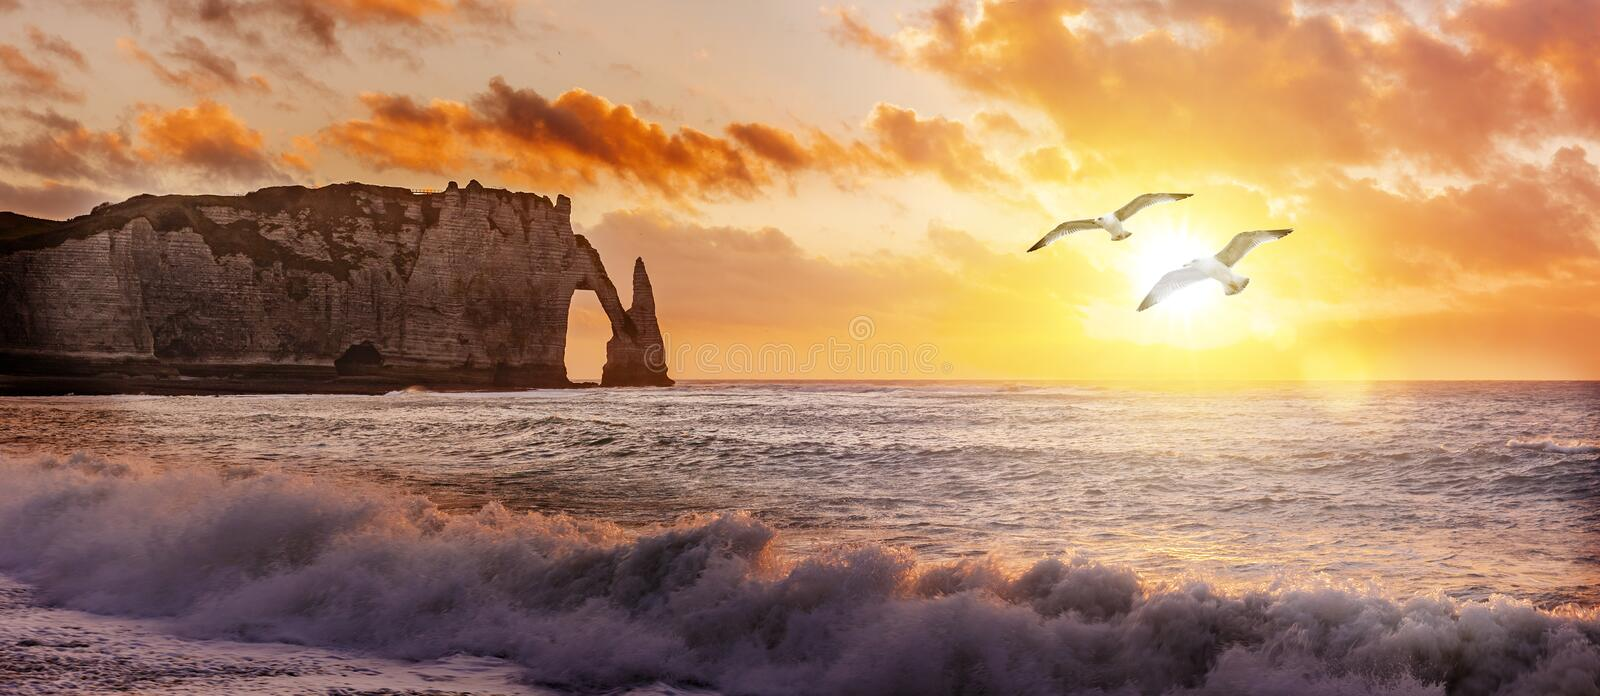 Cliffs of Etretat at sunset with flying Seagulls stock photography